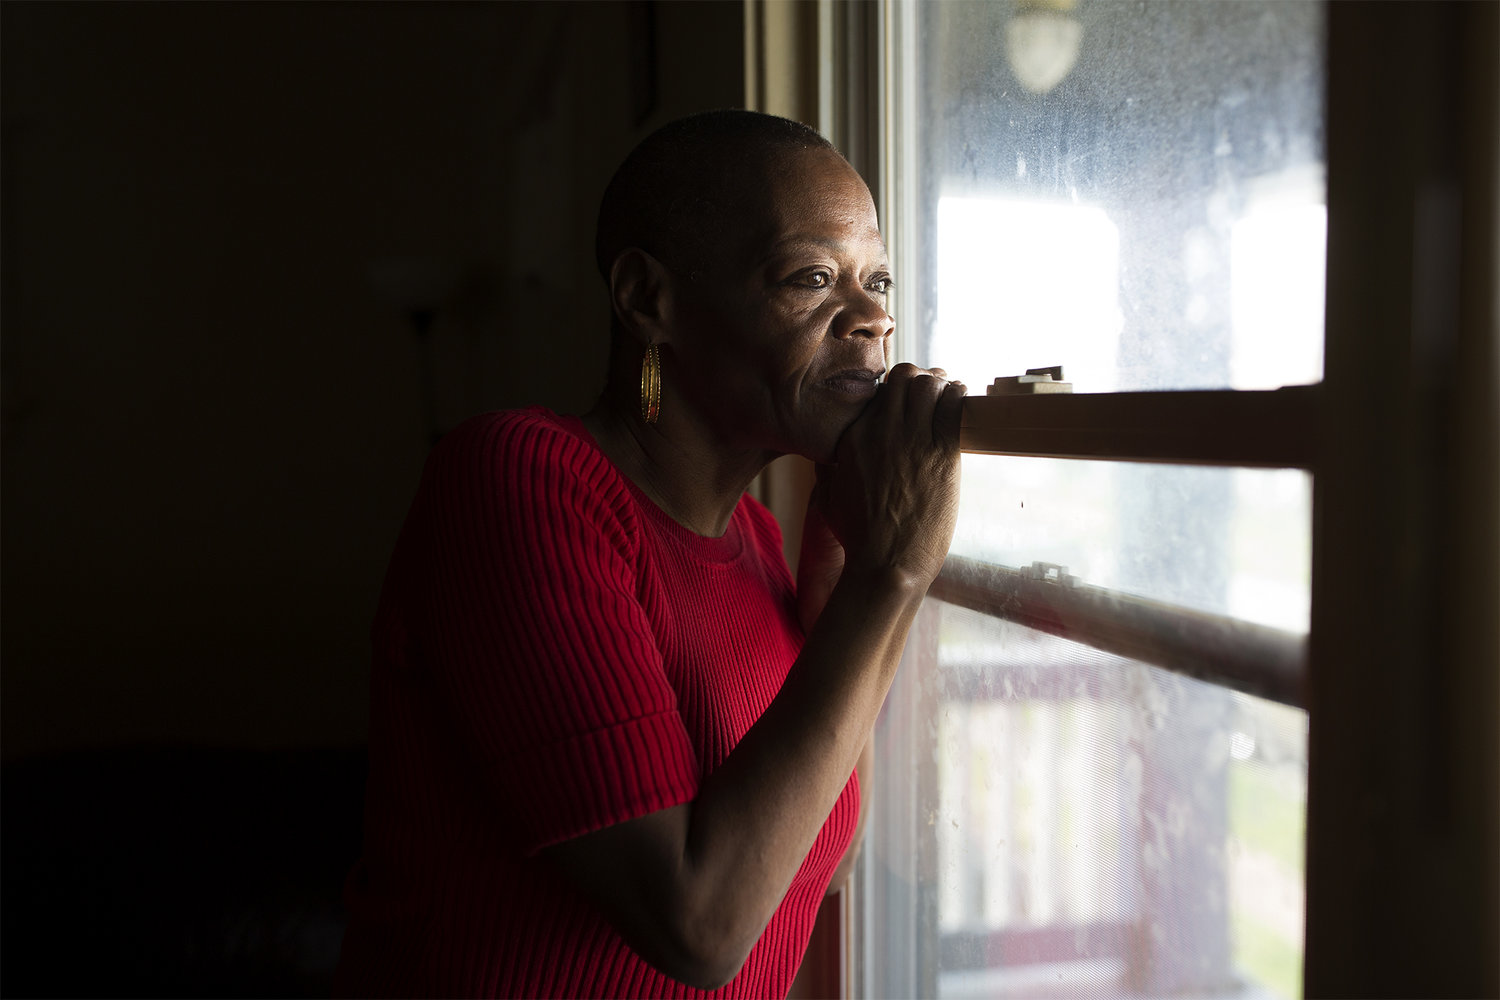 Rosetta Watson moved to Maplewood, Mo. to escape an abusive ex-boyfriend. But when he found her -- and subsequently beat her up -- Watson called for help. But this kept happening, and town officials took notice. Eventually, they told Watson the police service calls to her home constituted a public nuisance, and as punishment, they kicked her out of town. Watson is now suing the city in federal courts, and she has the backing of local and national legal and housing advocates. Hear her story in the latest episode of We Live Here. PHOTO BY CAROLINA HIDALGO   ST. LOUIS PUBLIC RADIO